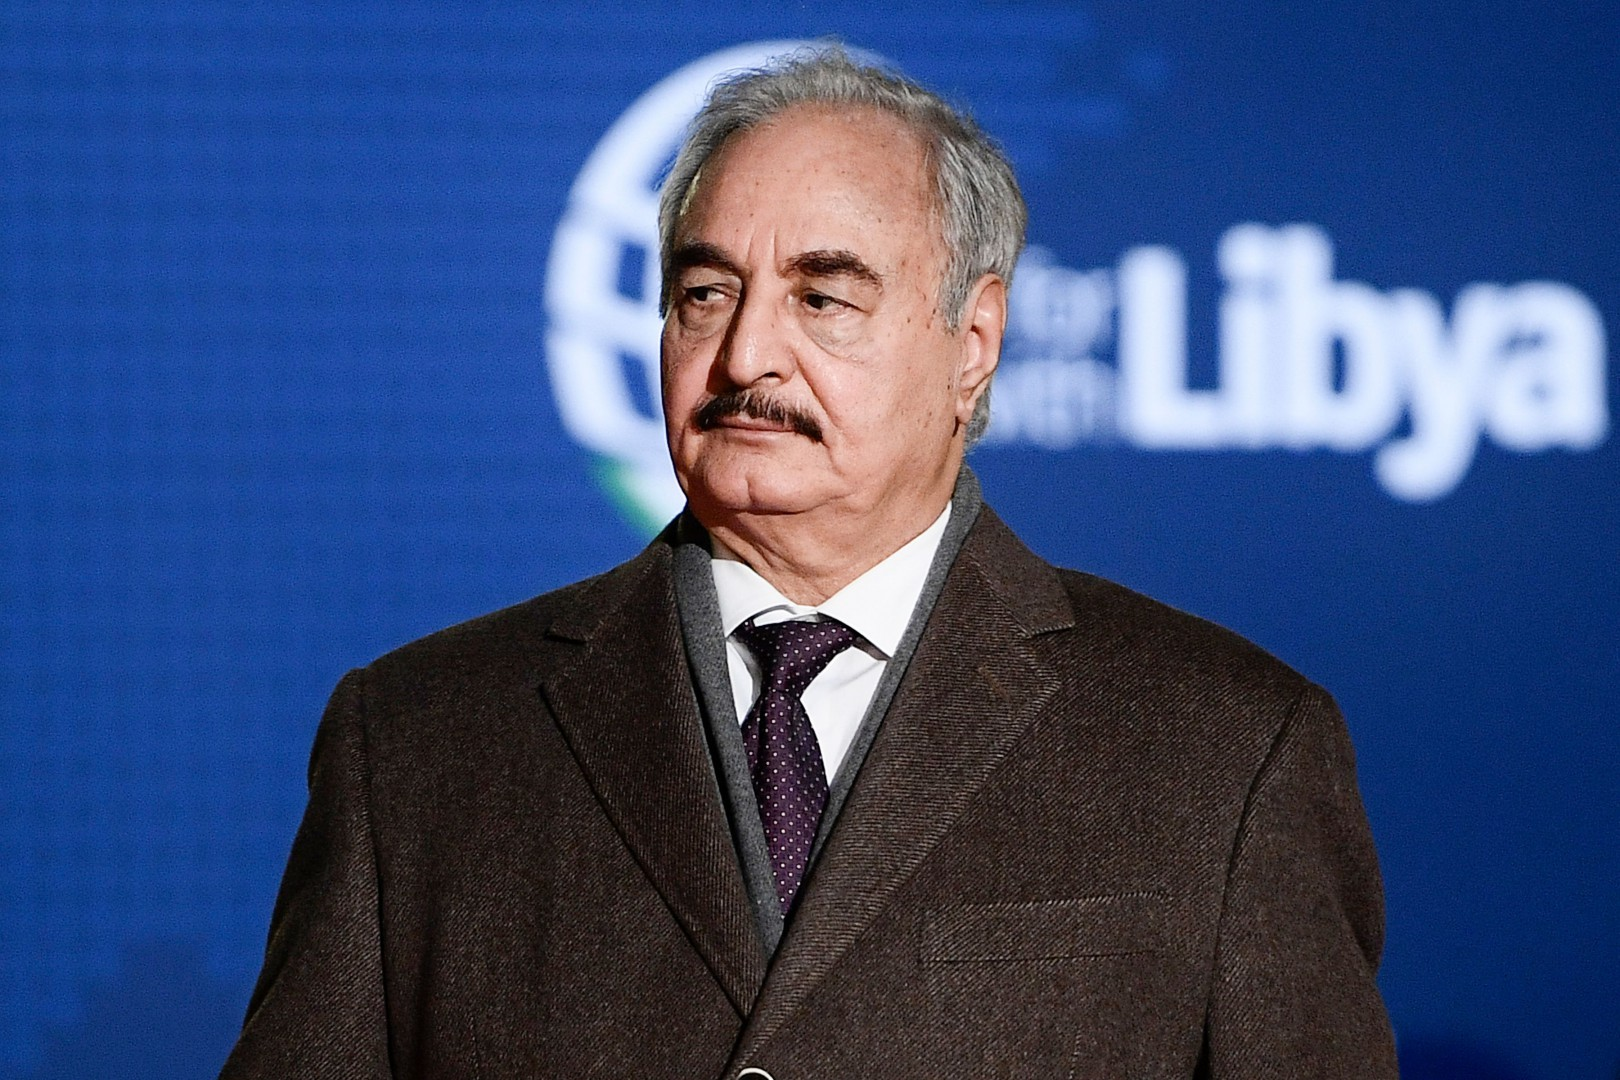 Libya Chief of Staff, Marshall Khalifa Haftar arrives for a conference on Libya on November 12, 2018 at Villa Igiea in Palermo. - Libya's key political players meet with global leaders in Palermo on November 12 in the latest bid by major powers to kickstart a long-stalled political process and trigger elections. (Photo by Filippo MONTEFORTE / AFP)